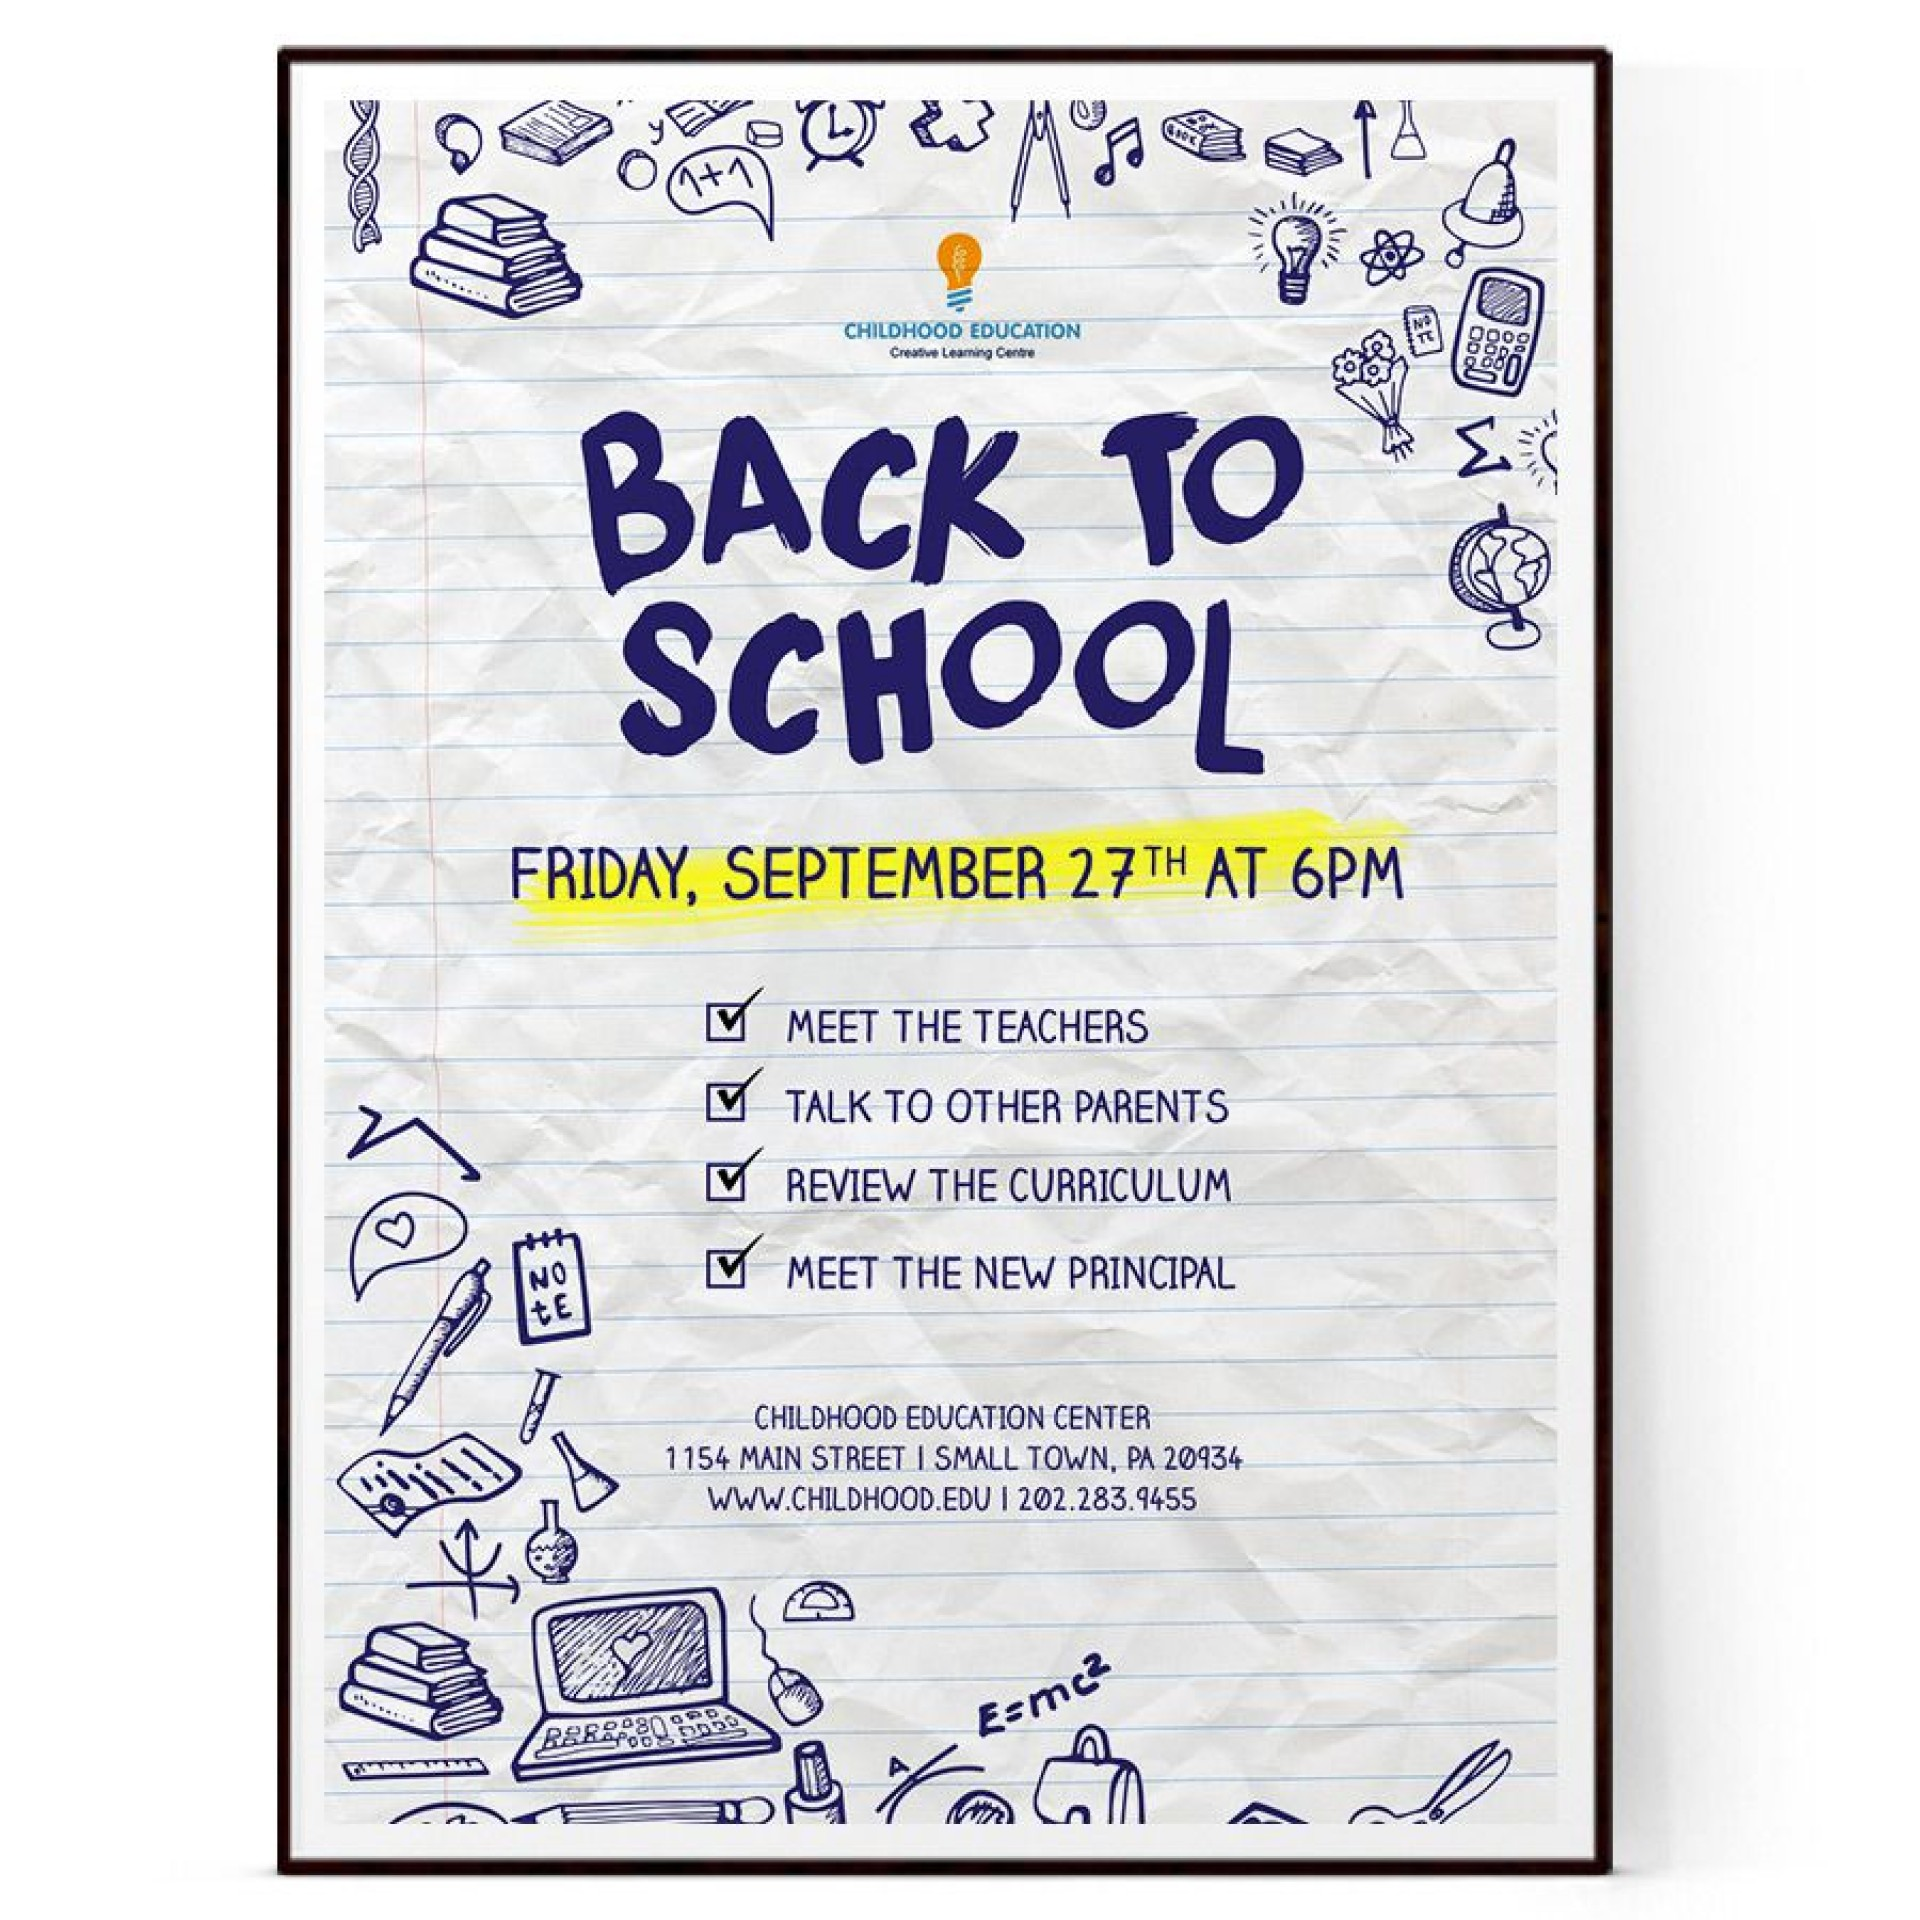 009 Outstanding Free Back To School Flyer Template Word Photo 1920